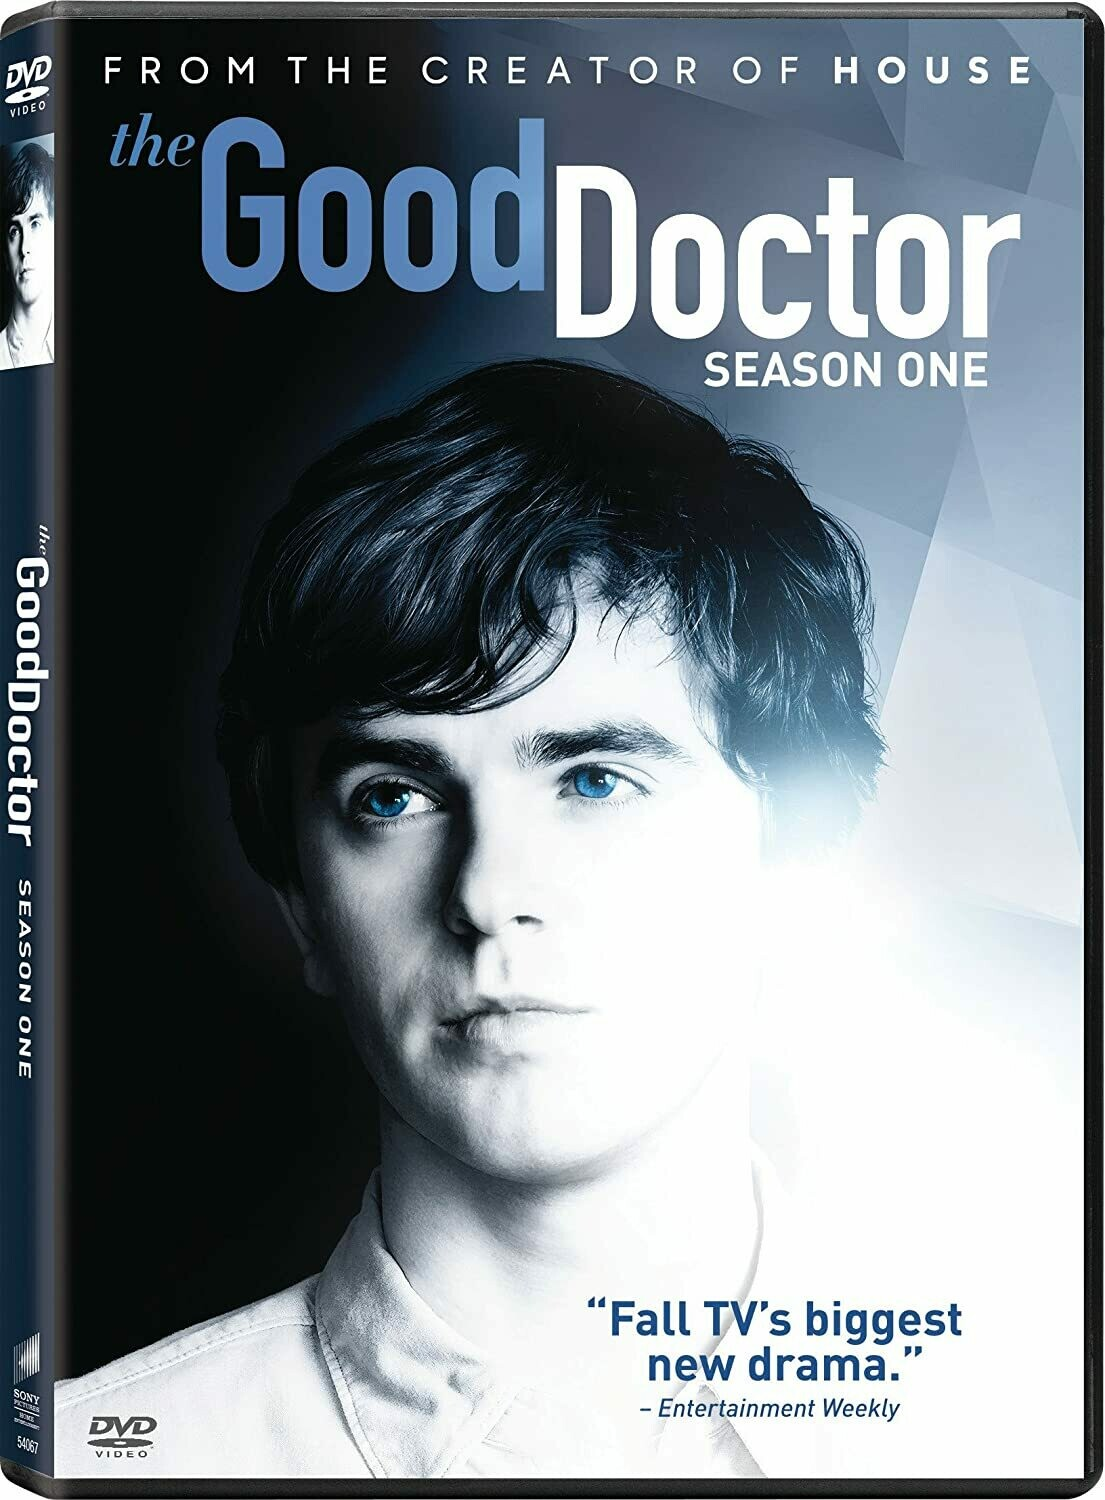 Good Doctor Season One (7 day rental)